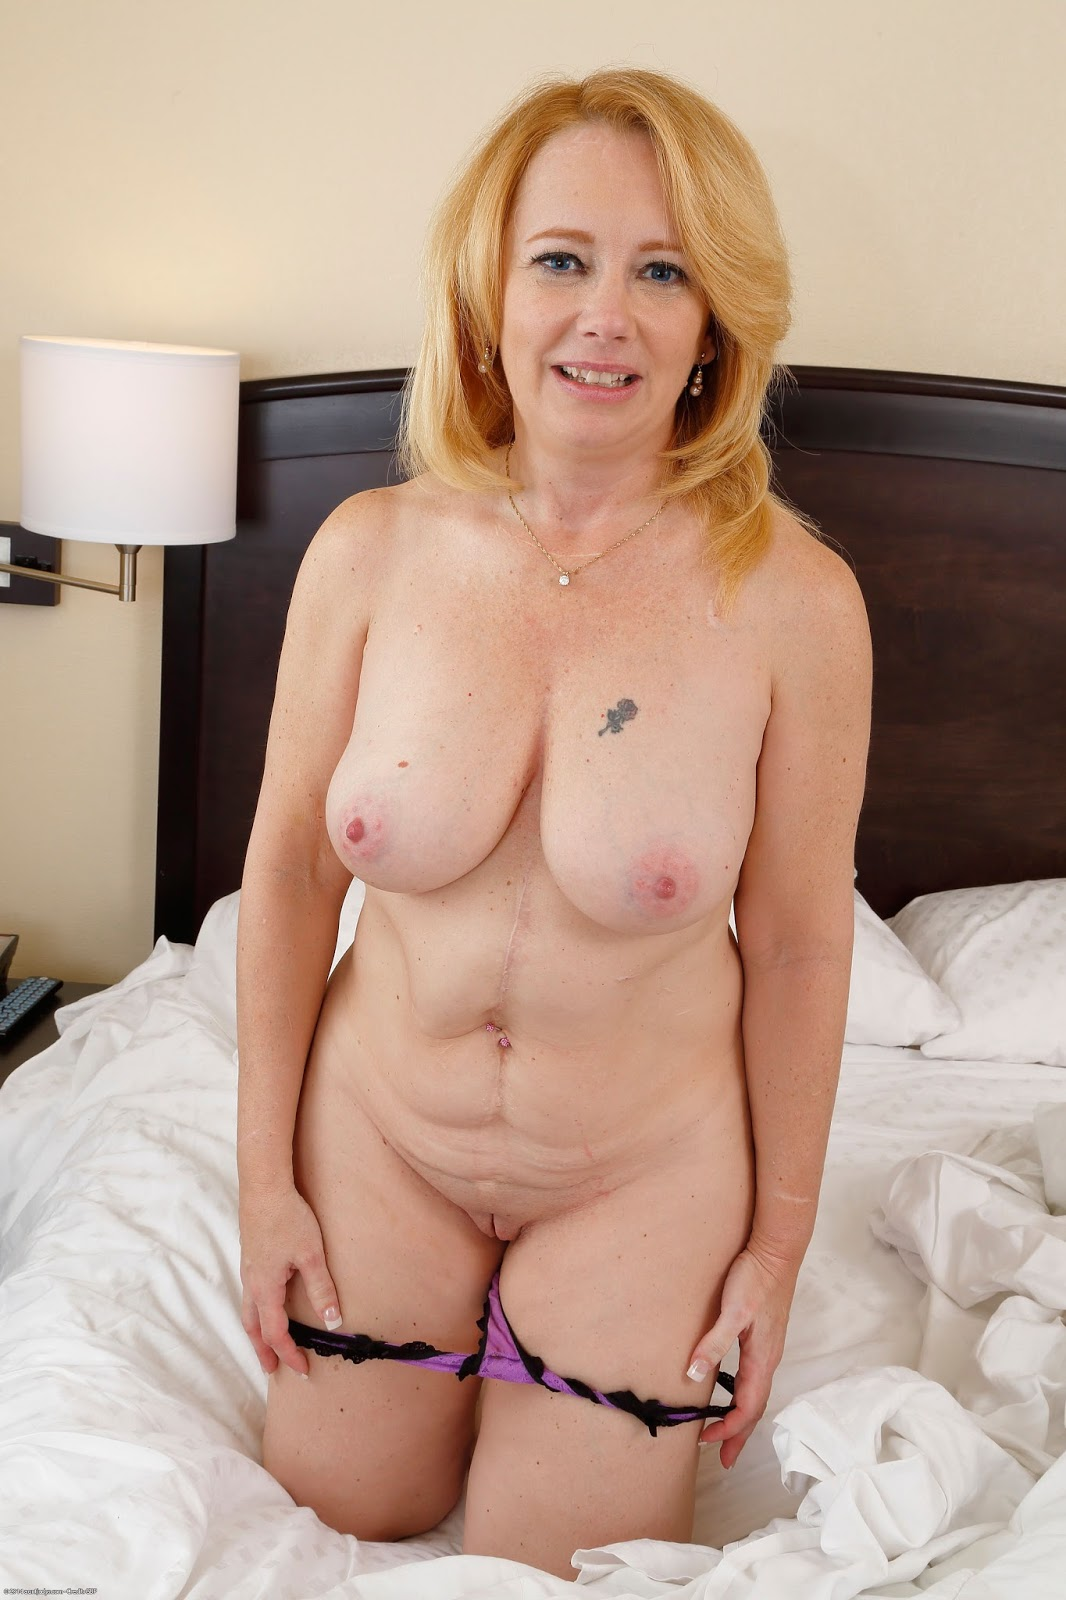 Filthy over sixty dating 4